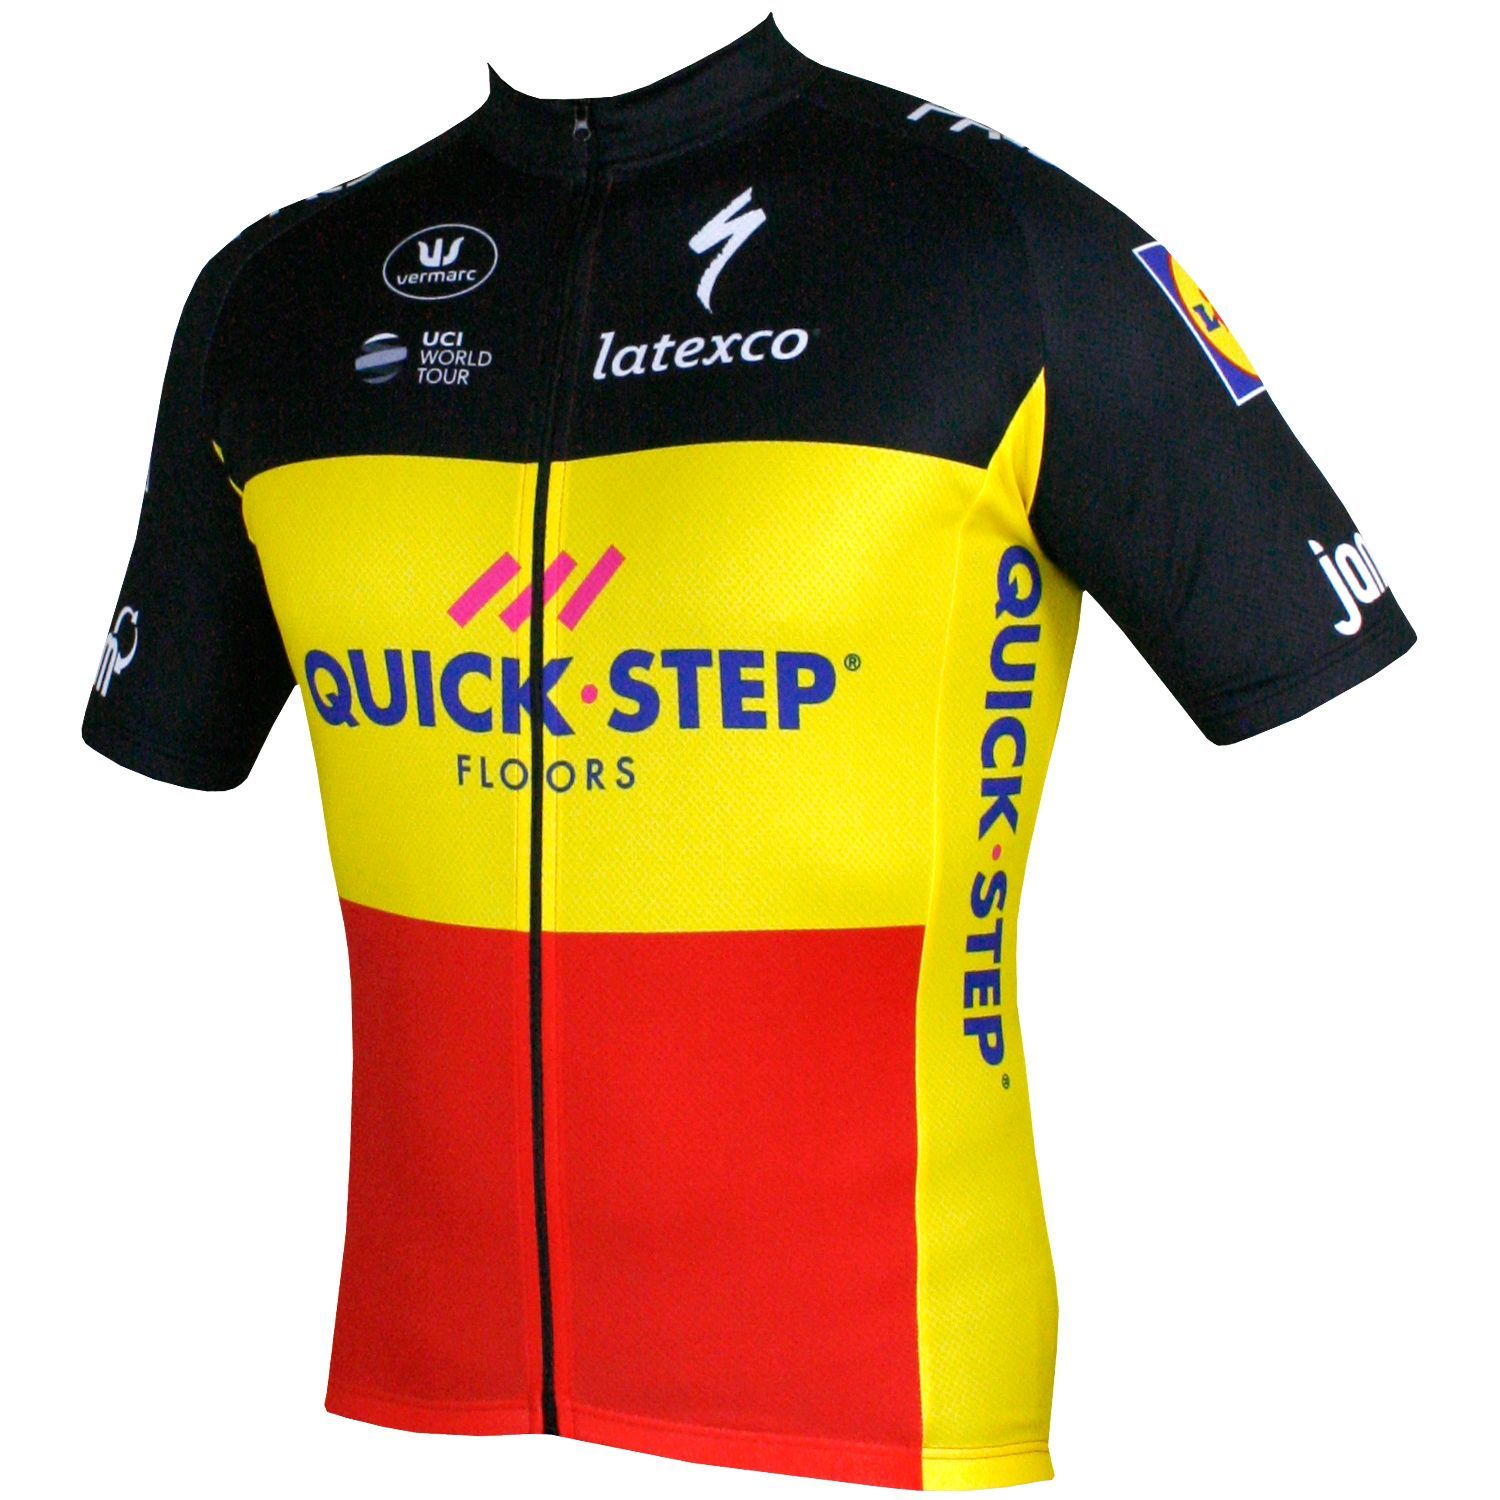 d25159c94 ... jersey - Vermarc professional cycling. Next